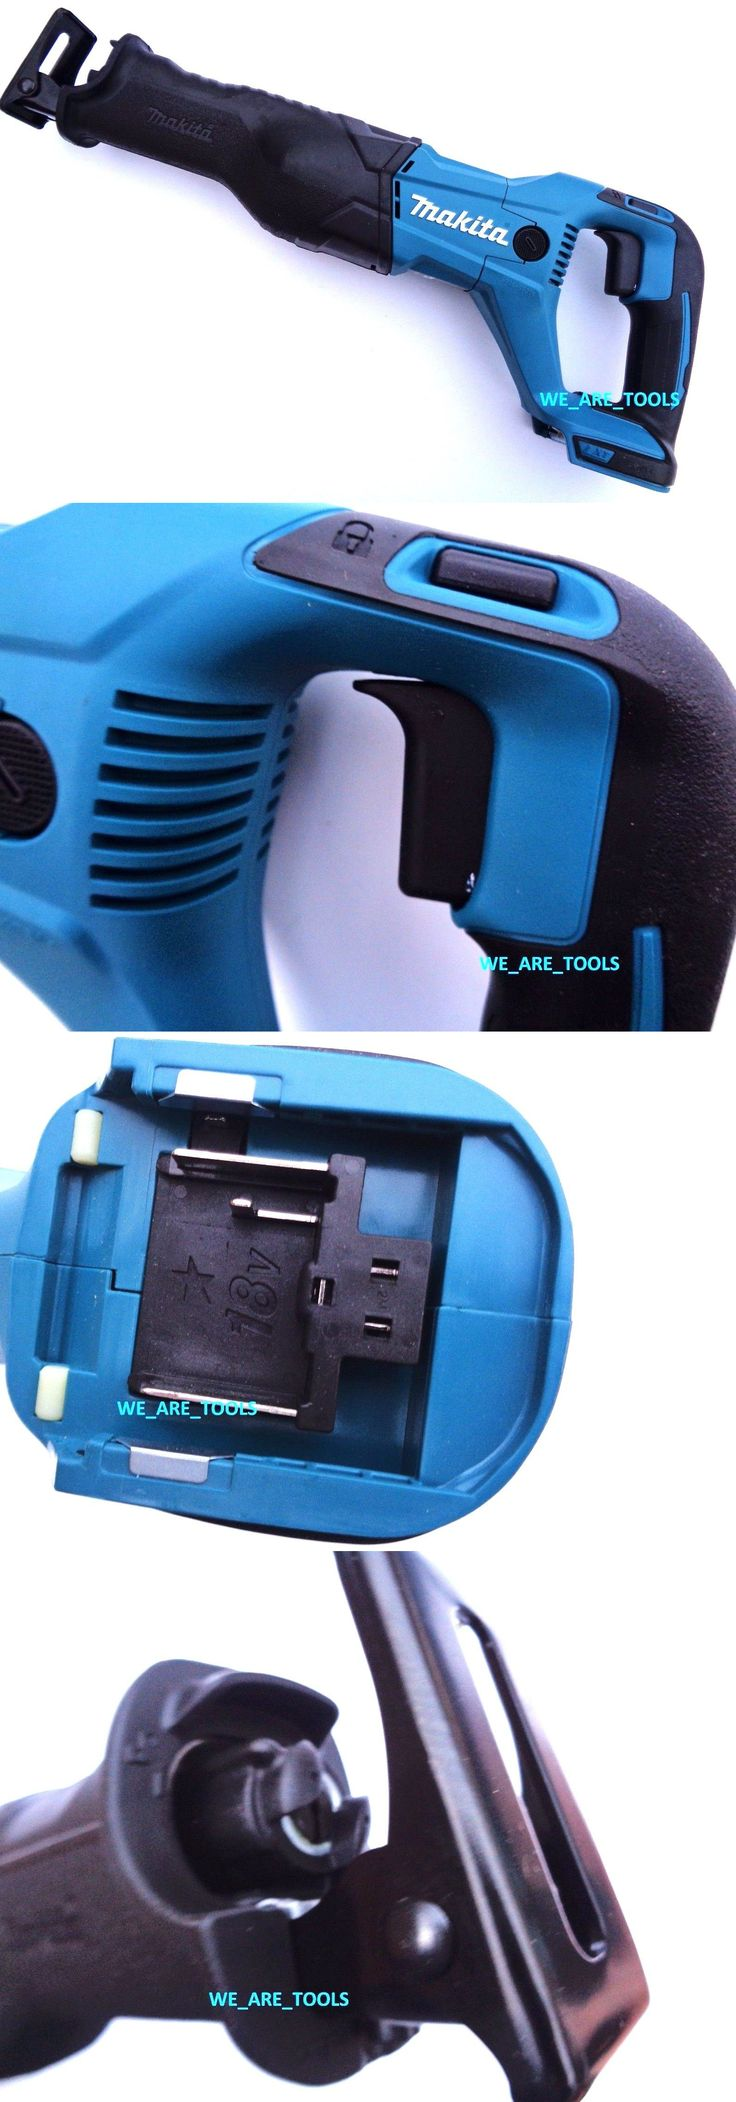 tools: New Makita 18V Xrj04 Cordless Battery Reciprocating Saw W/ Blade 18 Volt -> BUY IT NOW ONLY: $78.97 on eBay!